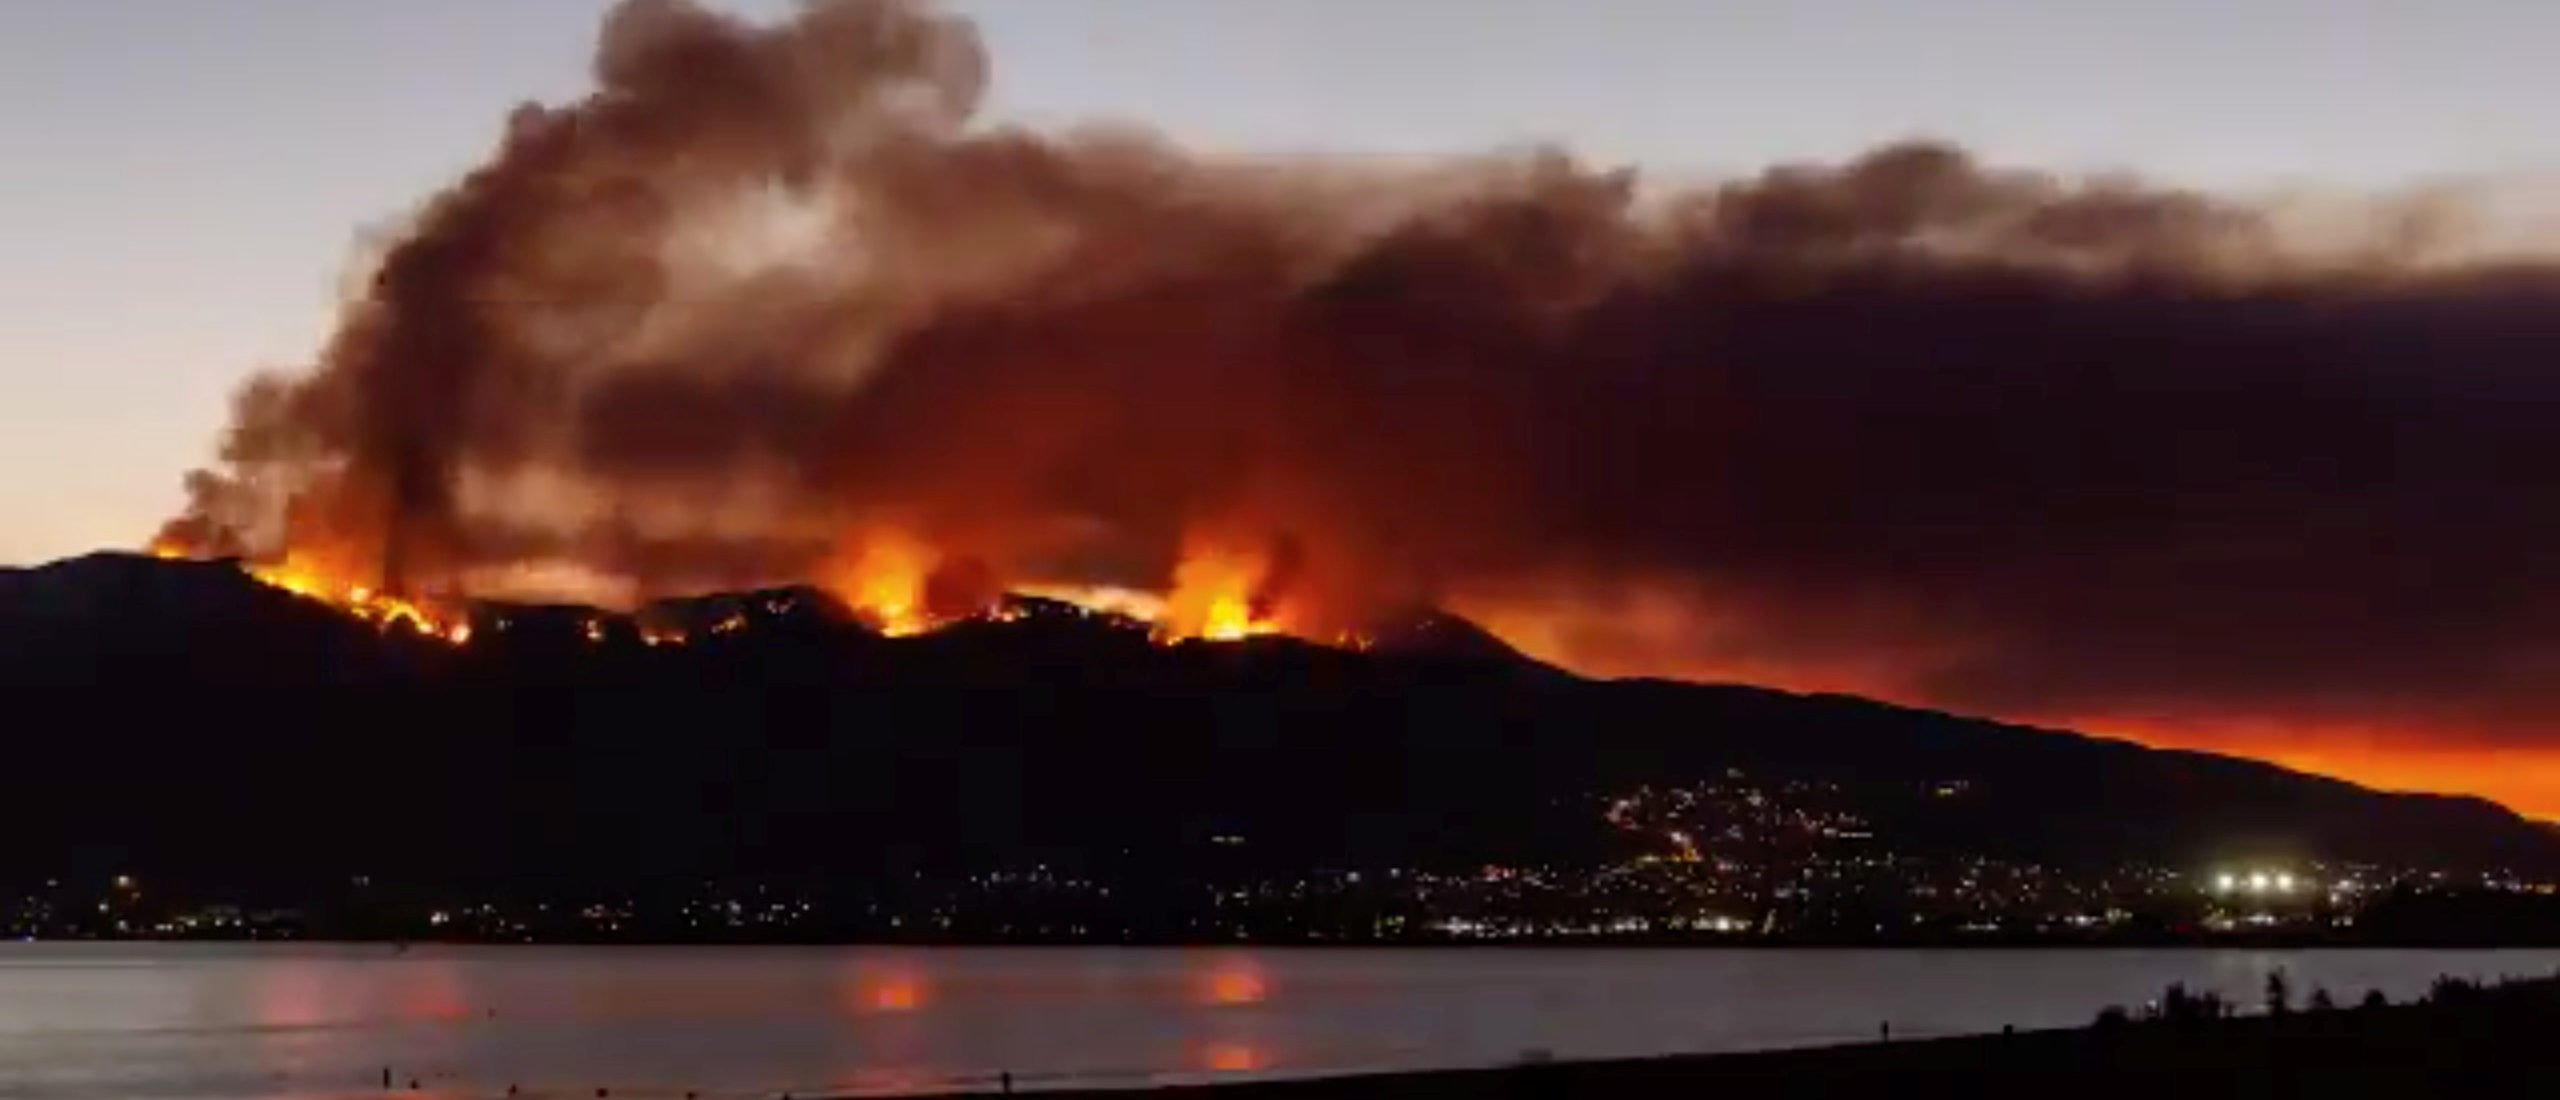 Scientist Calls Out Media 'Misinformation' On Wildfires And Global Warming